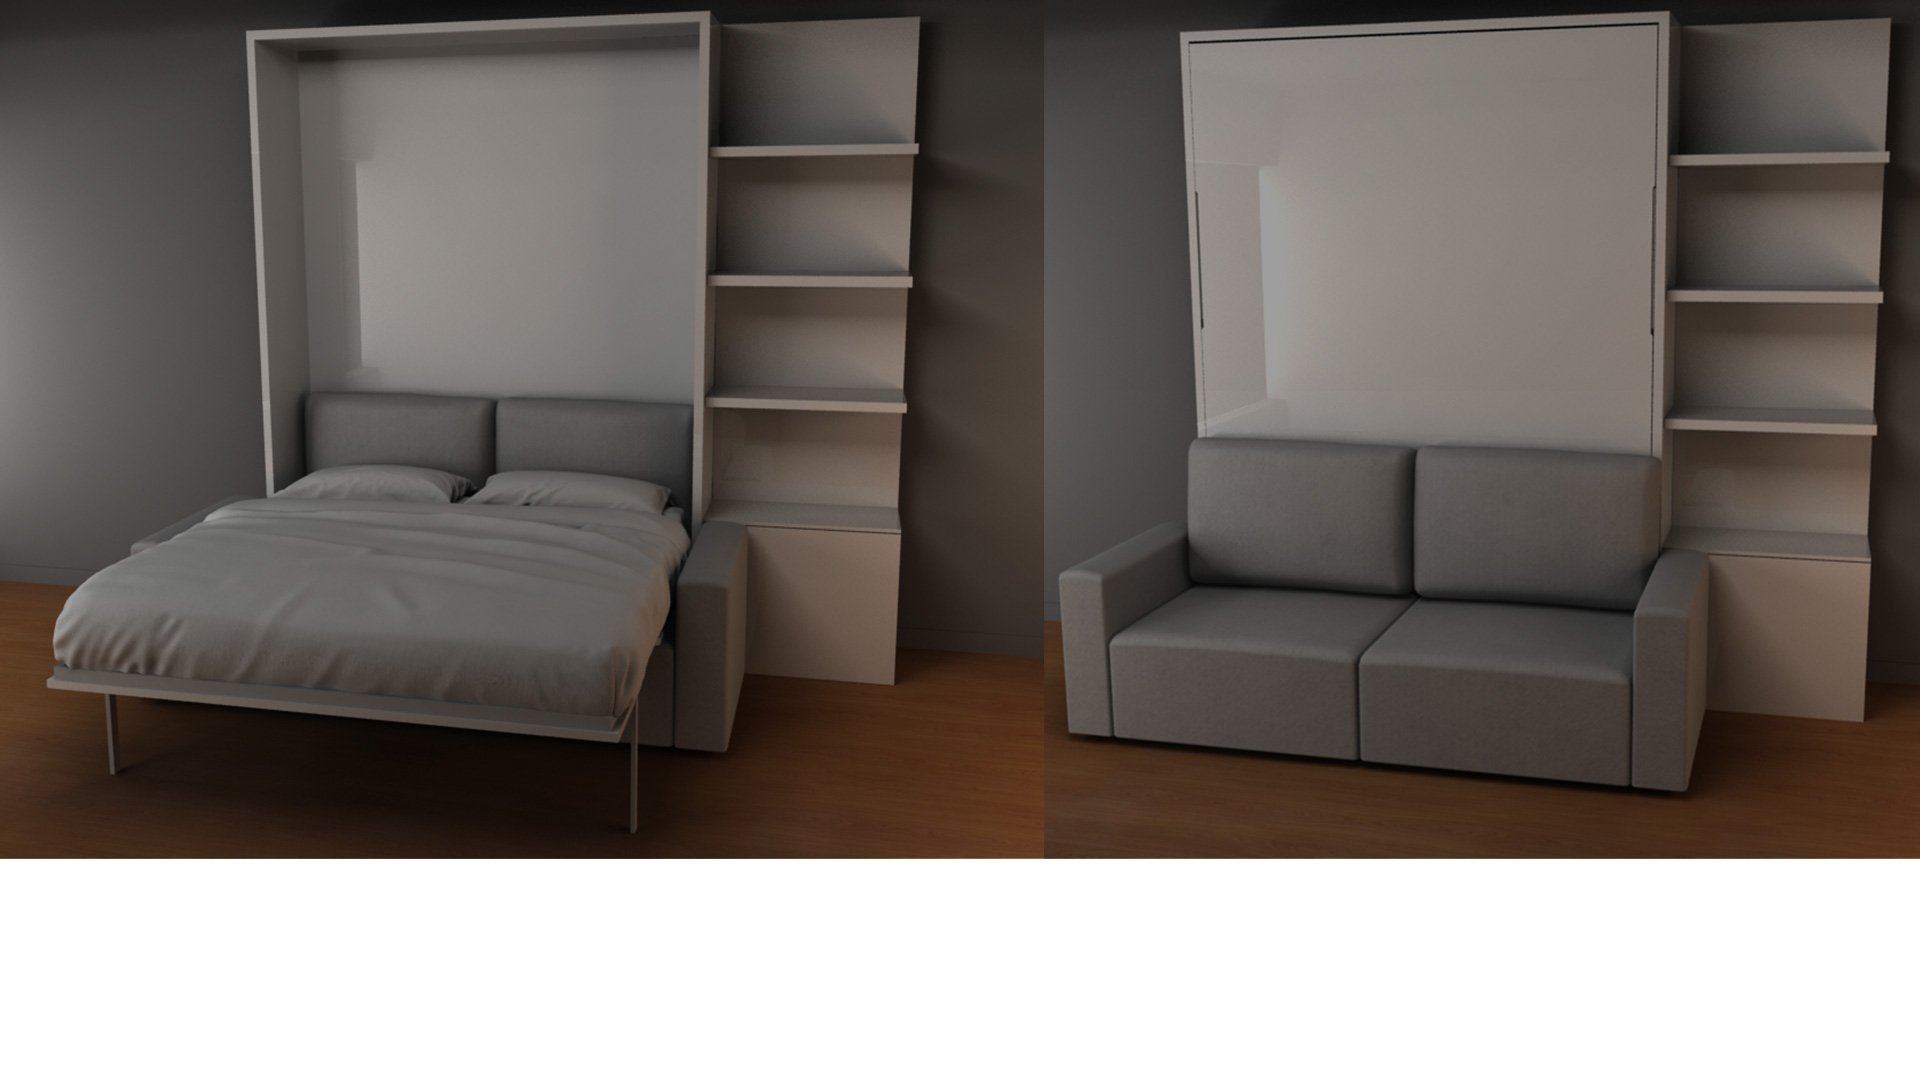 Wall Bed Sofas Wall Beds That Transform Into Sofas - Murphy bed couch ideas space savers